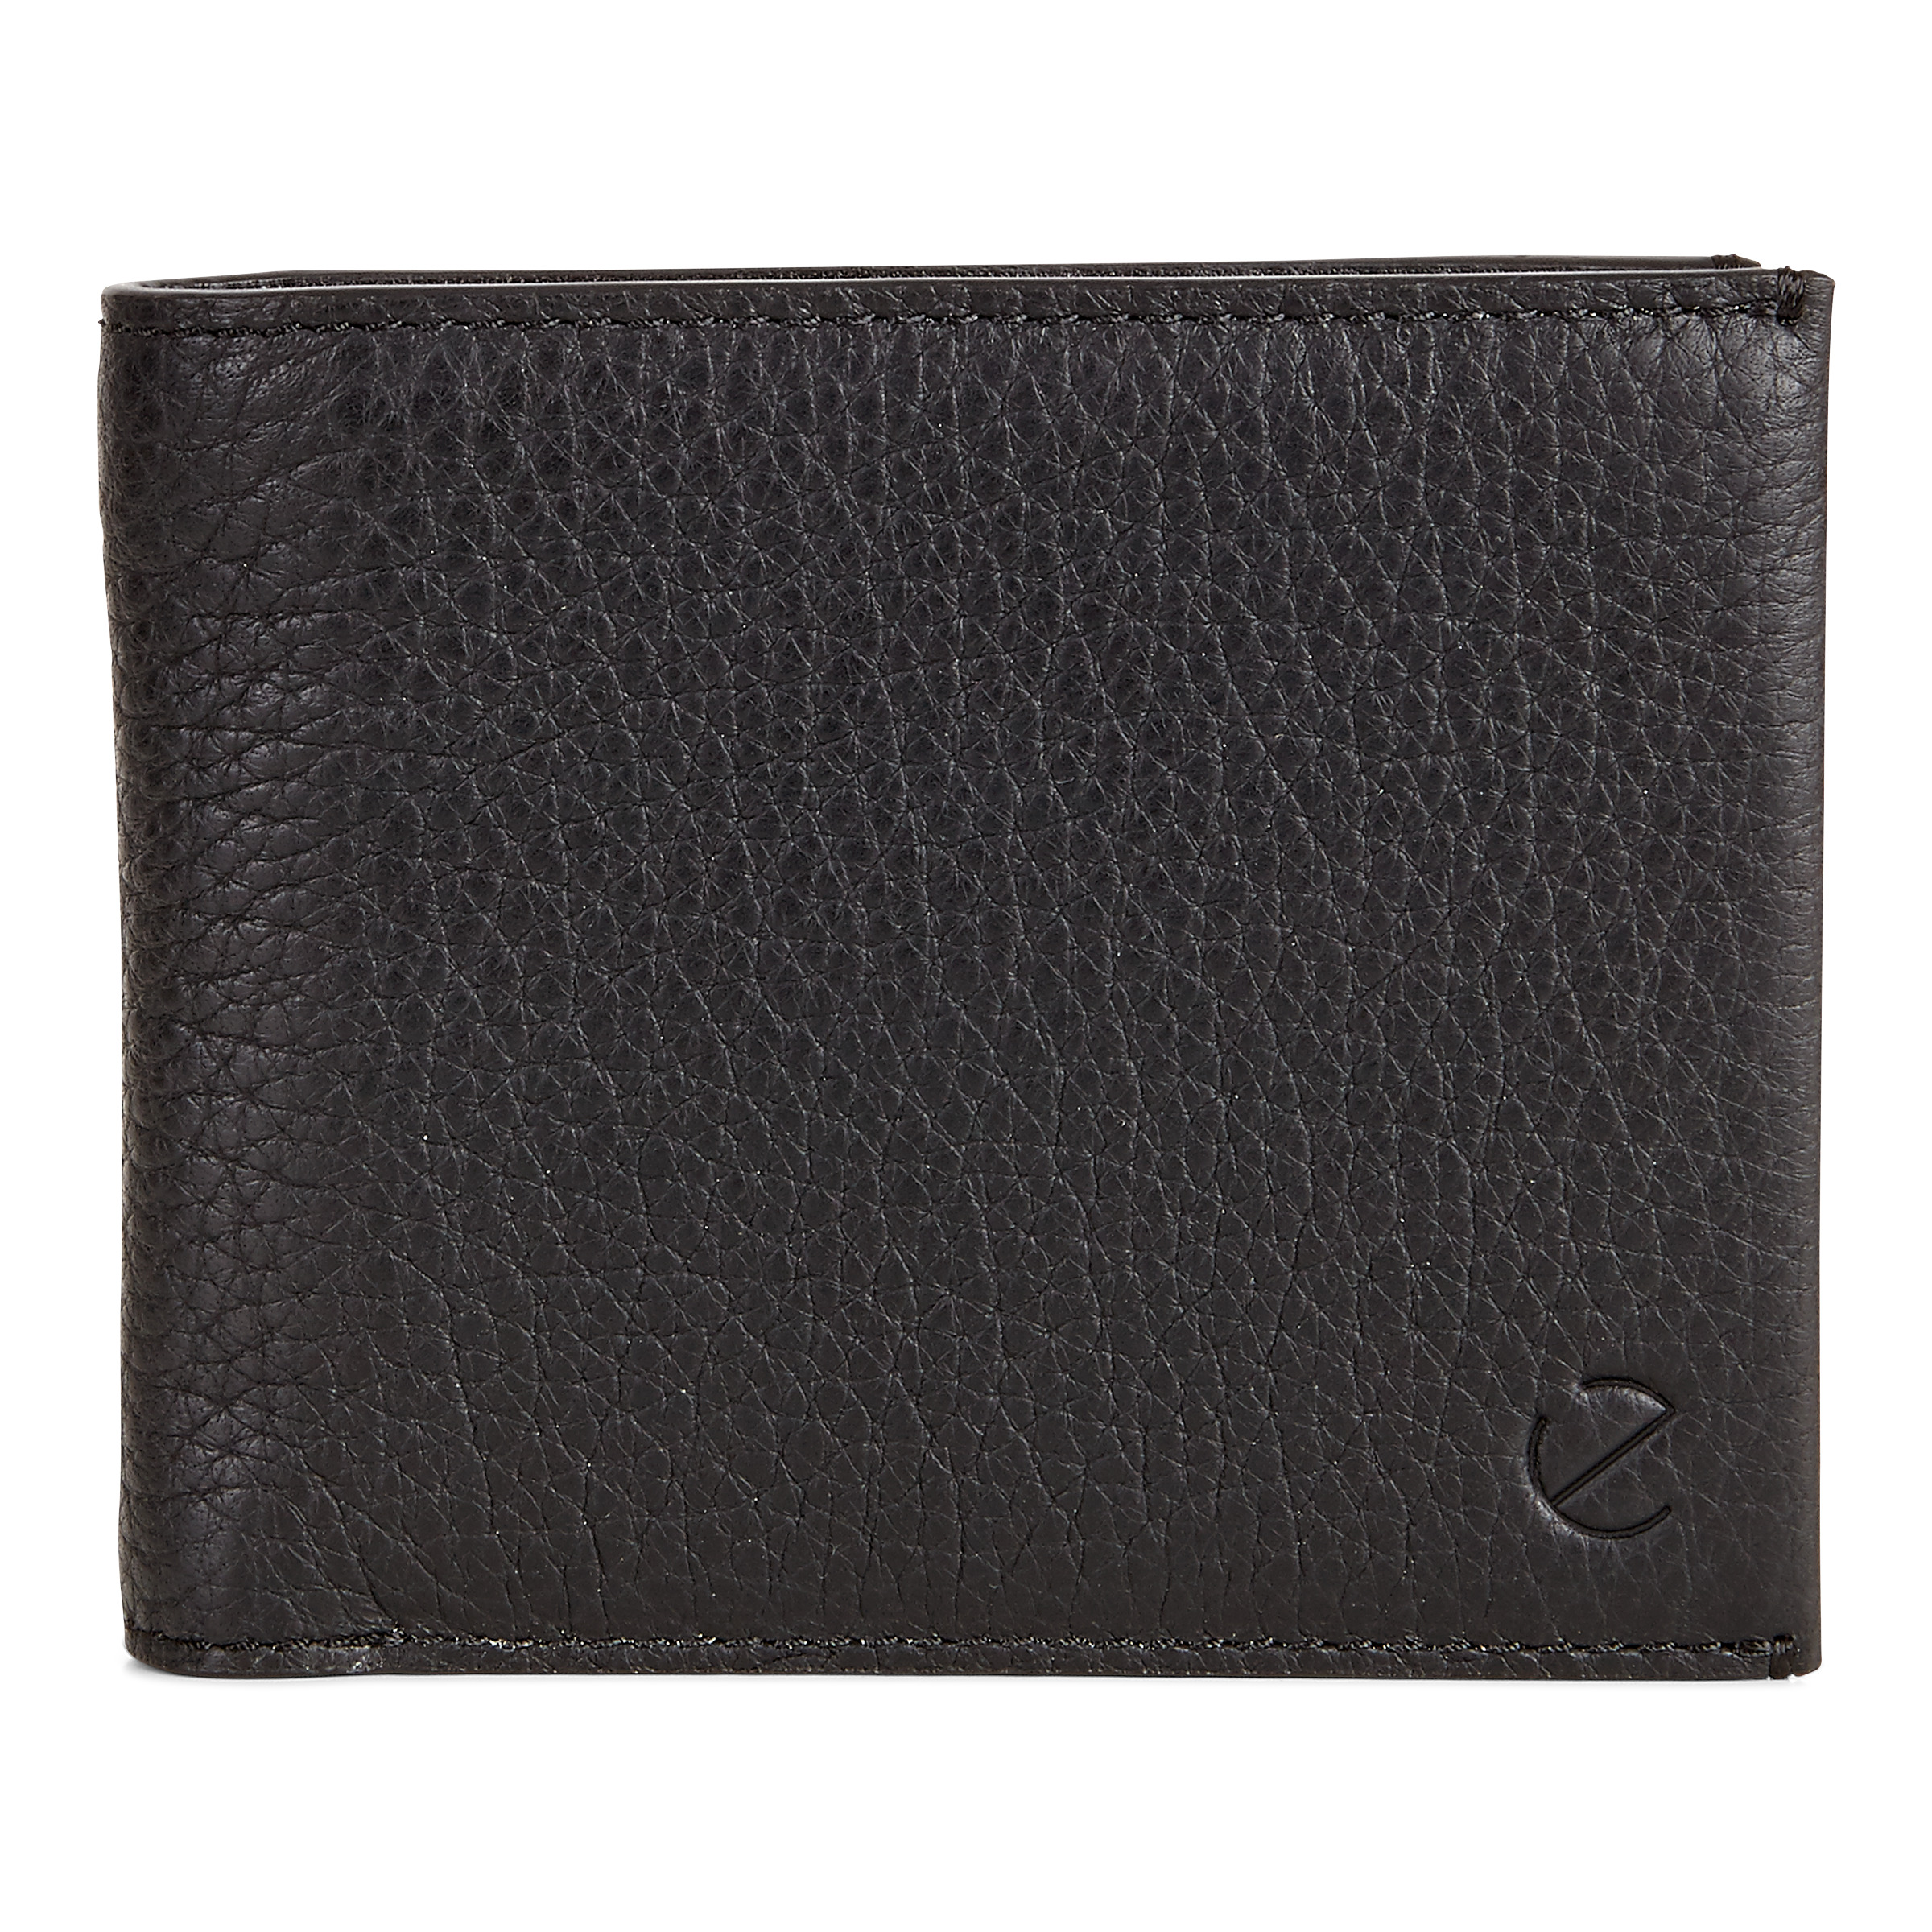 Image of ECCO Arne Rfid Billfold Wallet